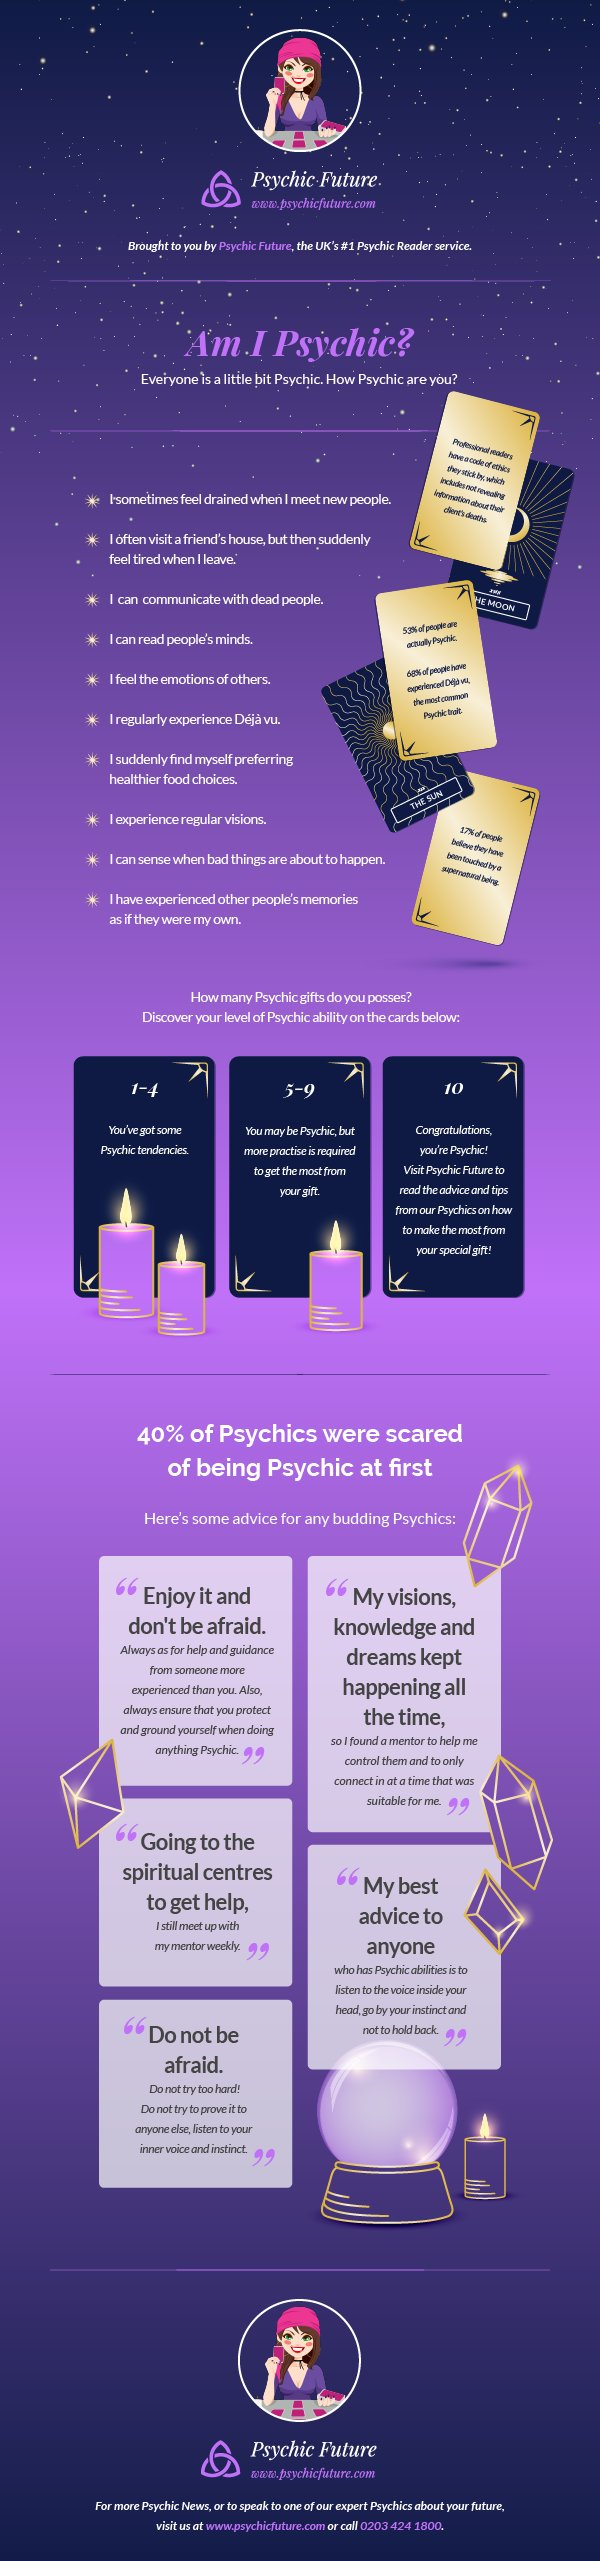 A detailed infographic about psychic abilities